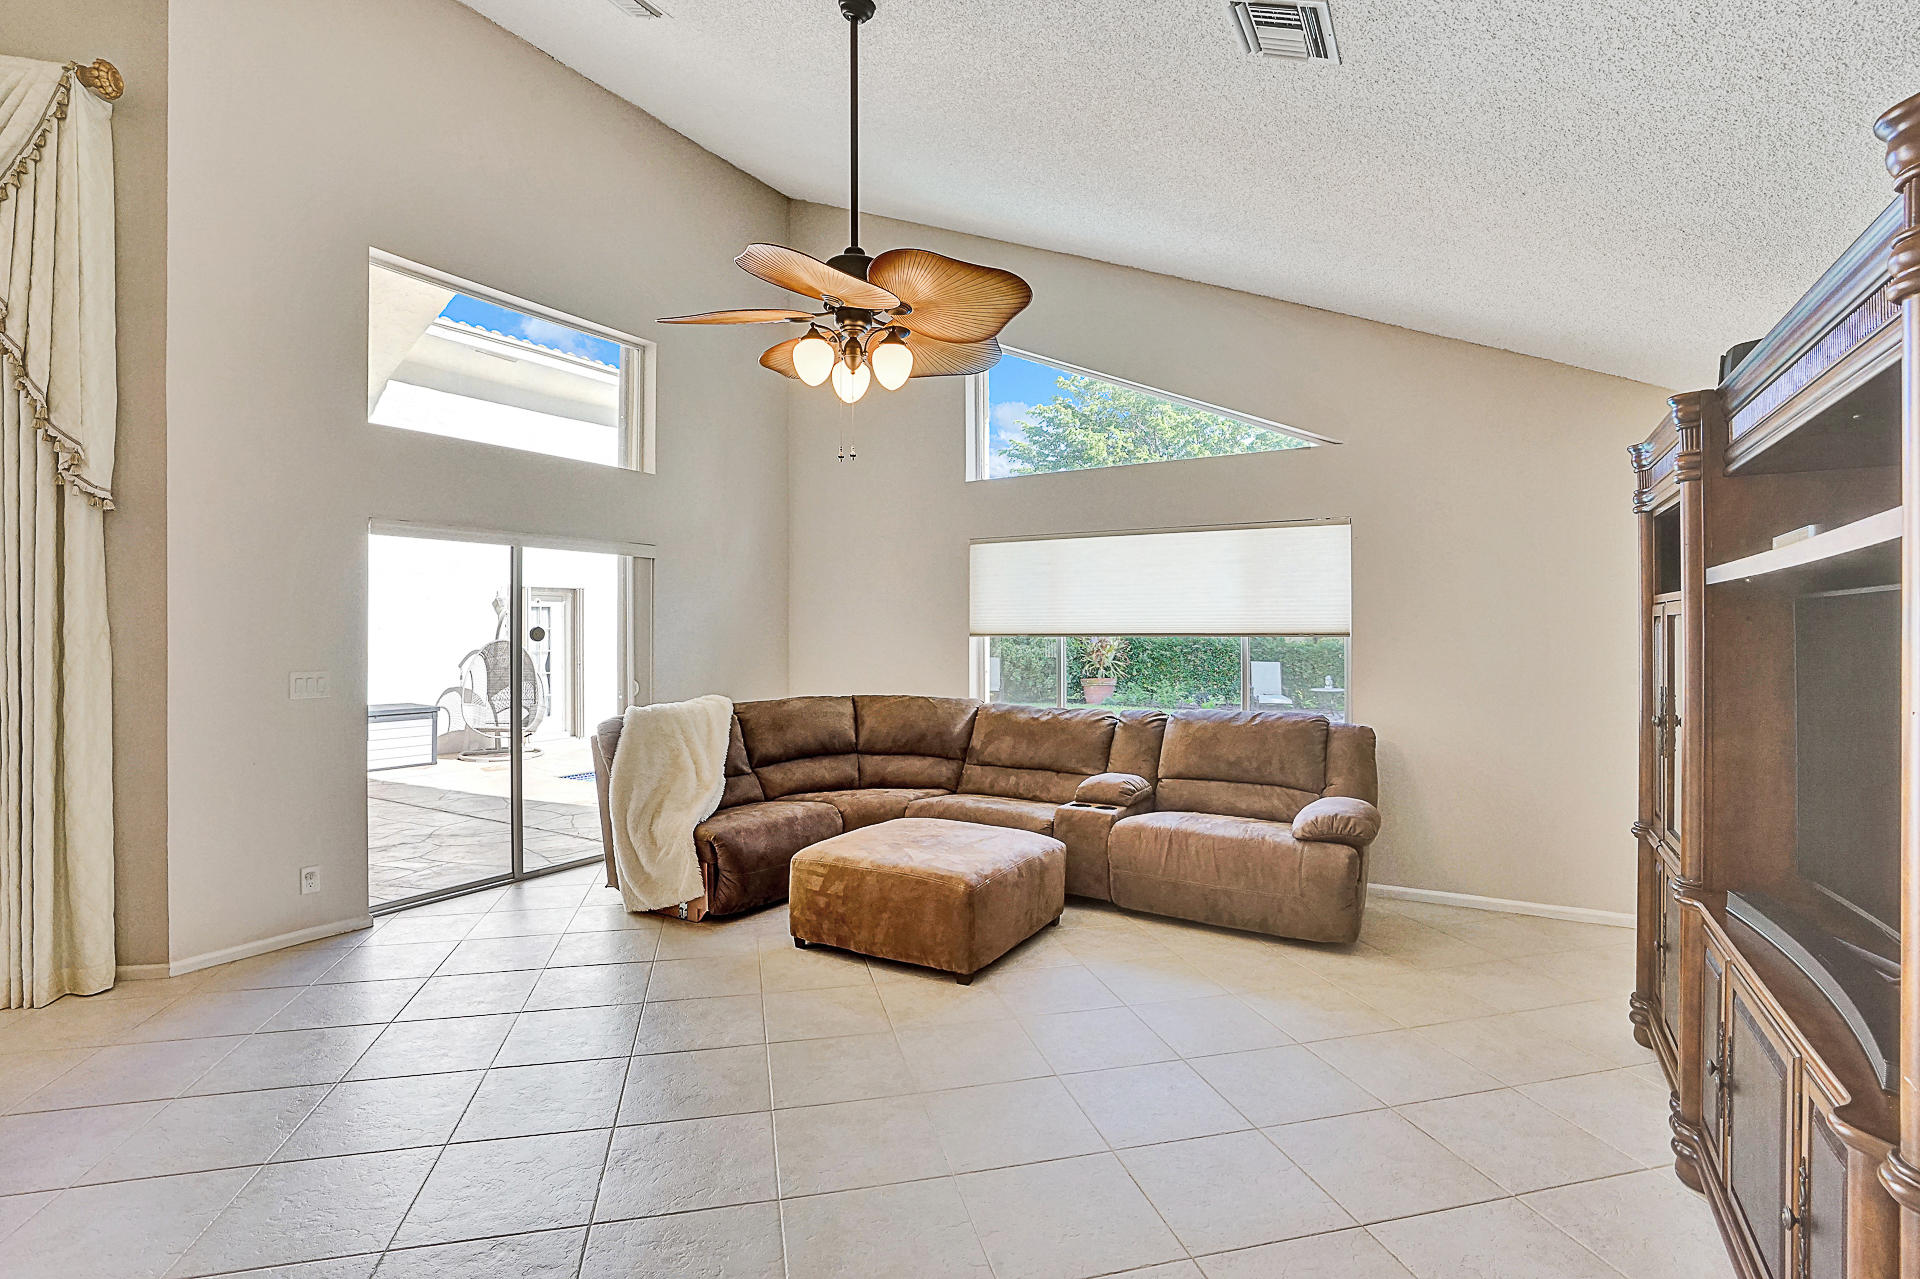 EAGLE TRACE HOMES FOR SALE